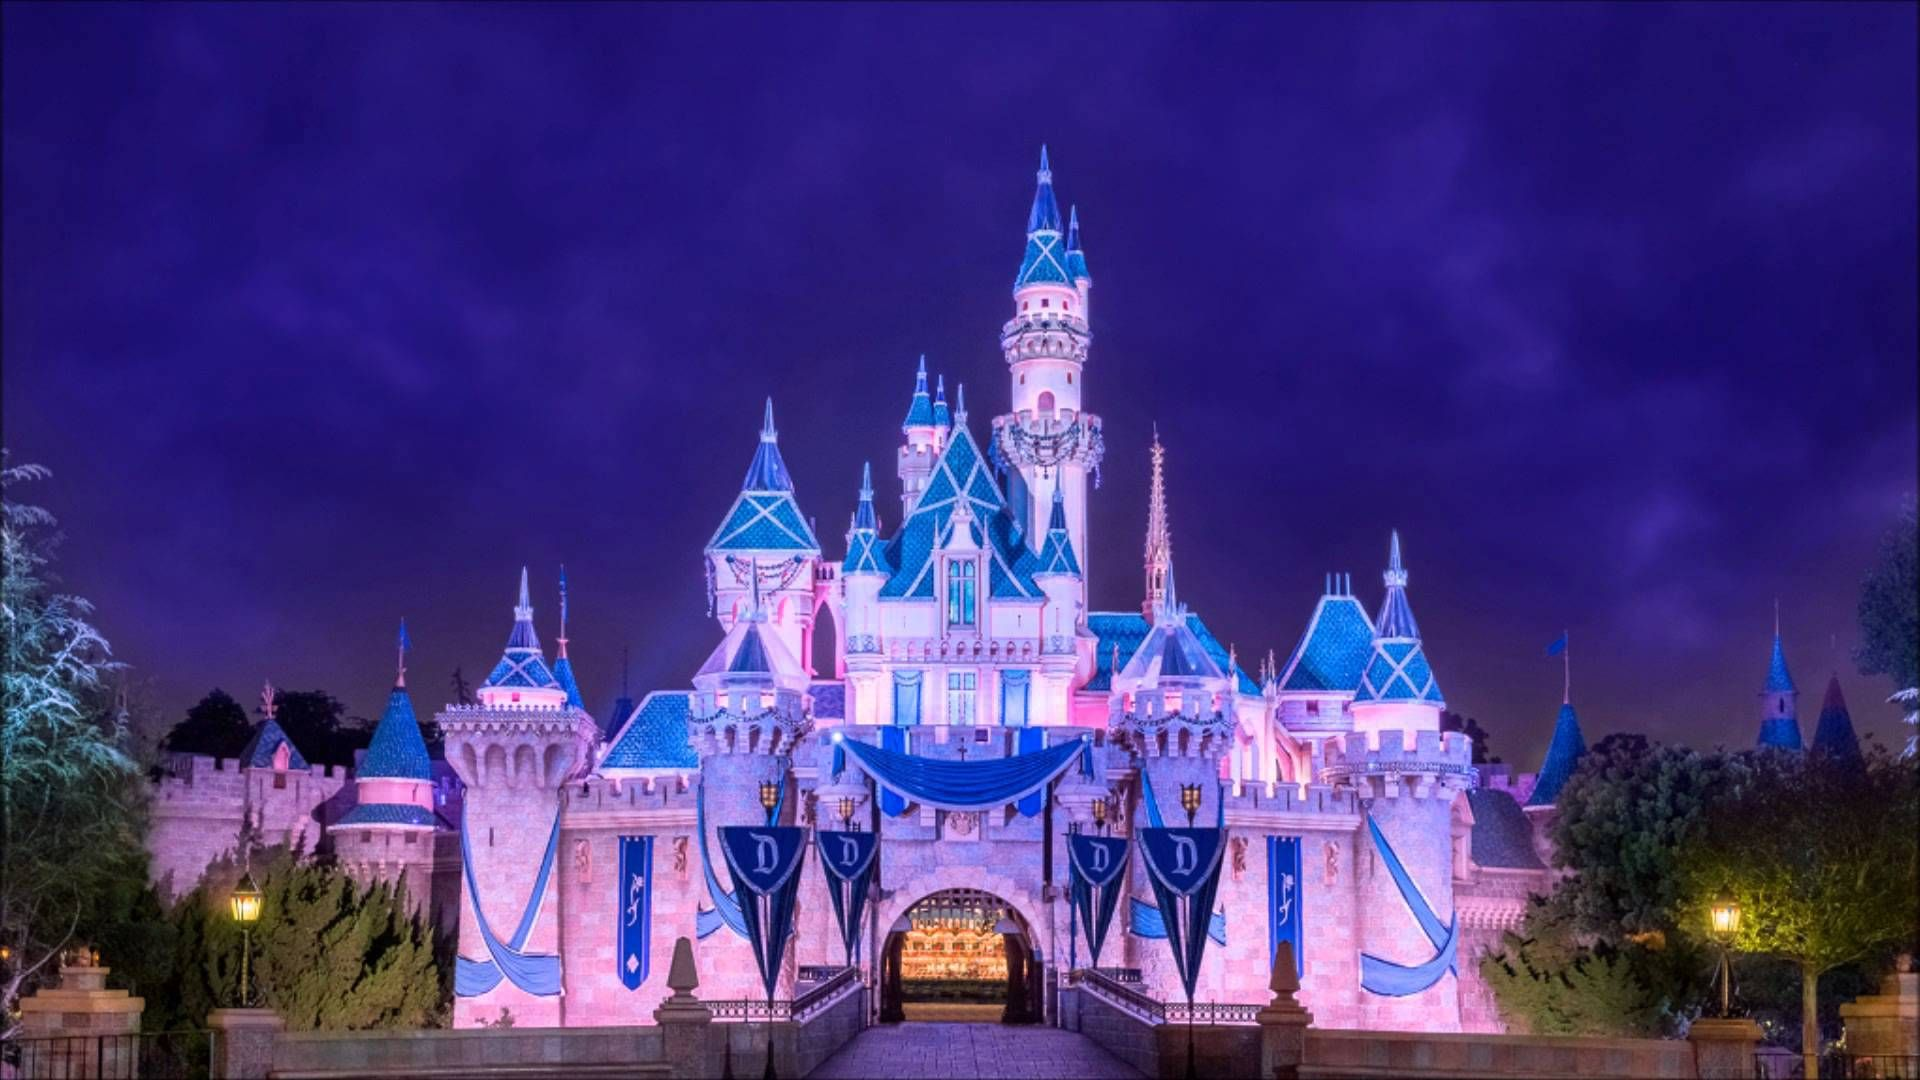 Sleeping Beauty Castle Disneyland Hd Desktop Wallpaper With